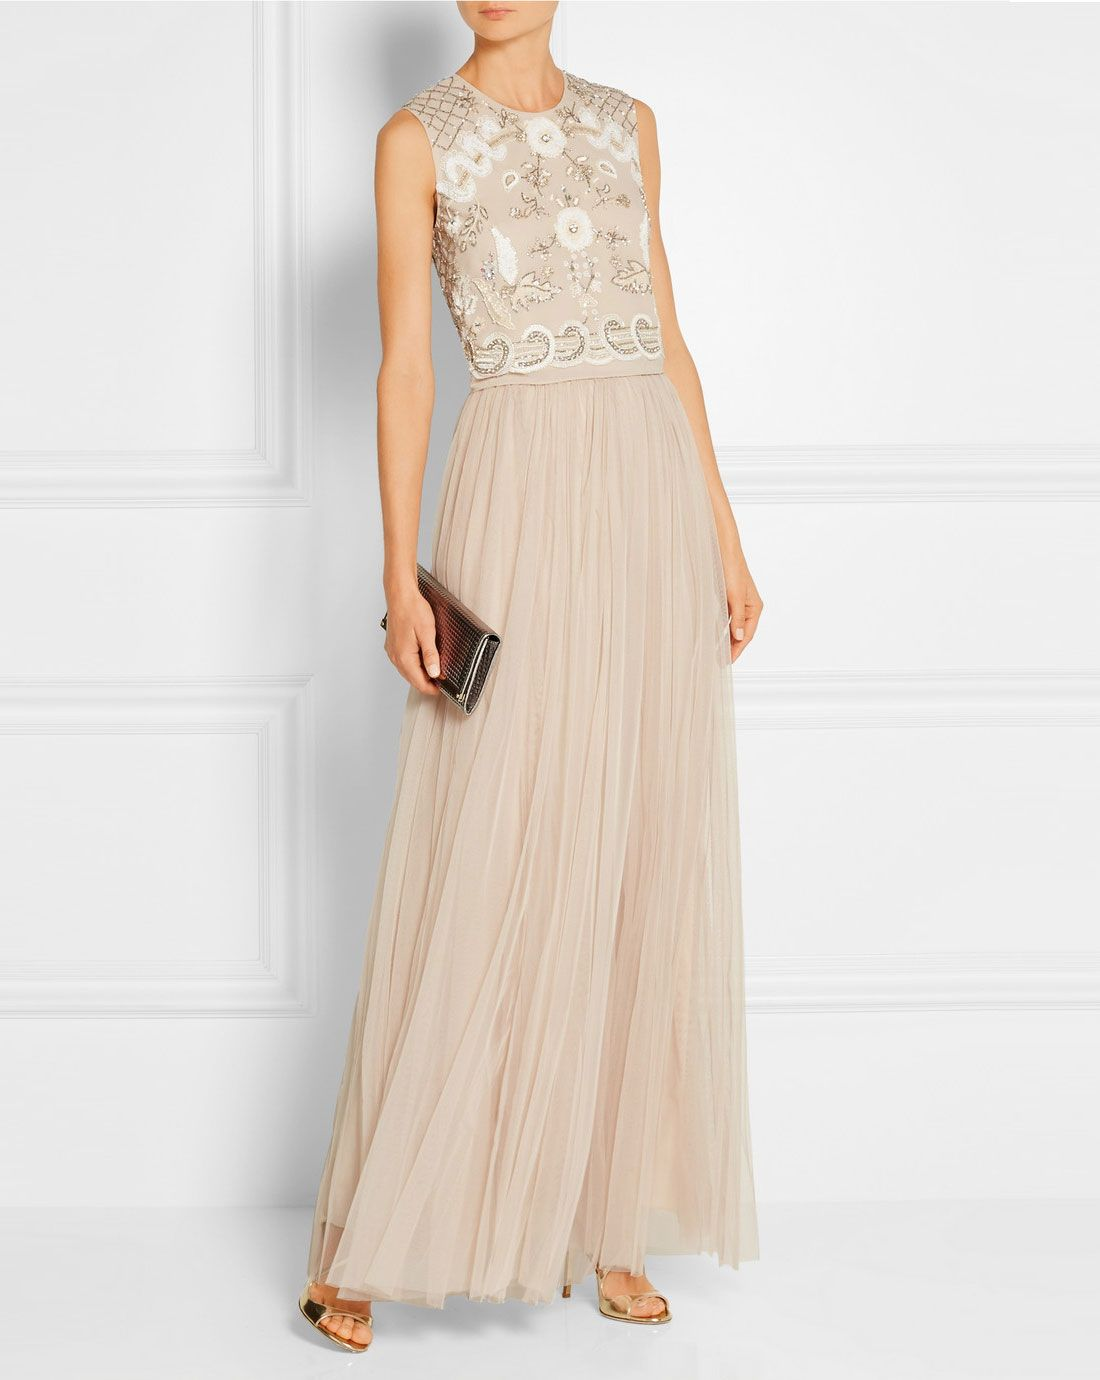 Whether your preparing for your big day or not, this dress belongs in your closet.